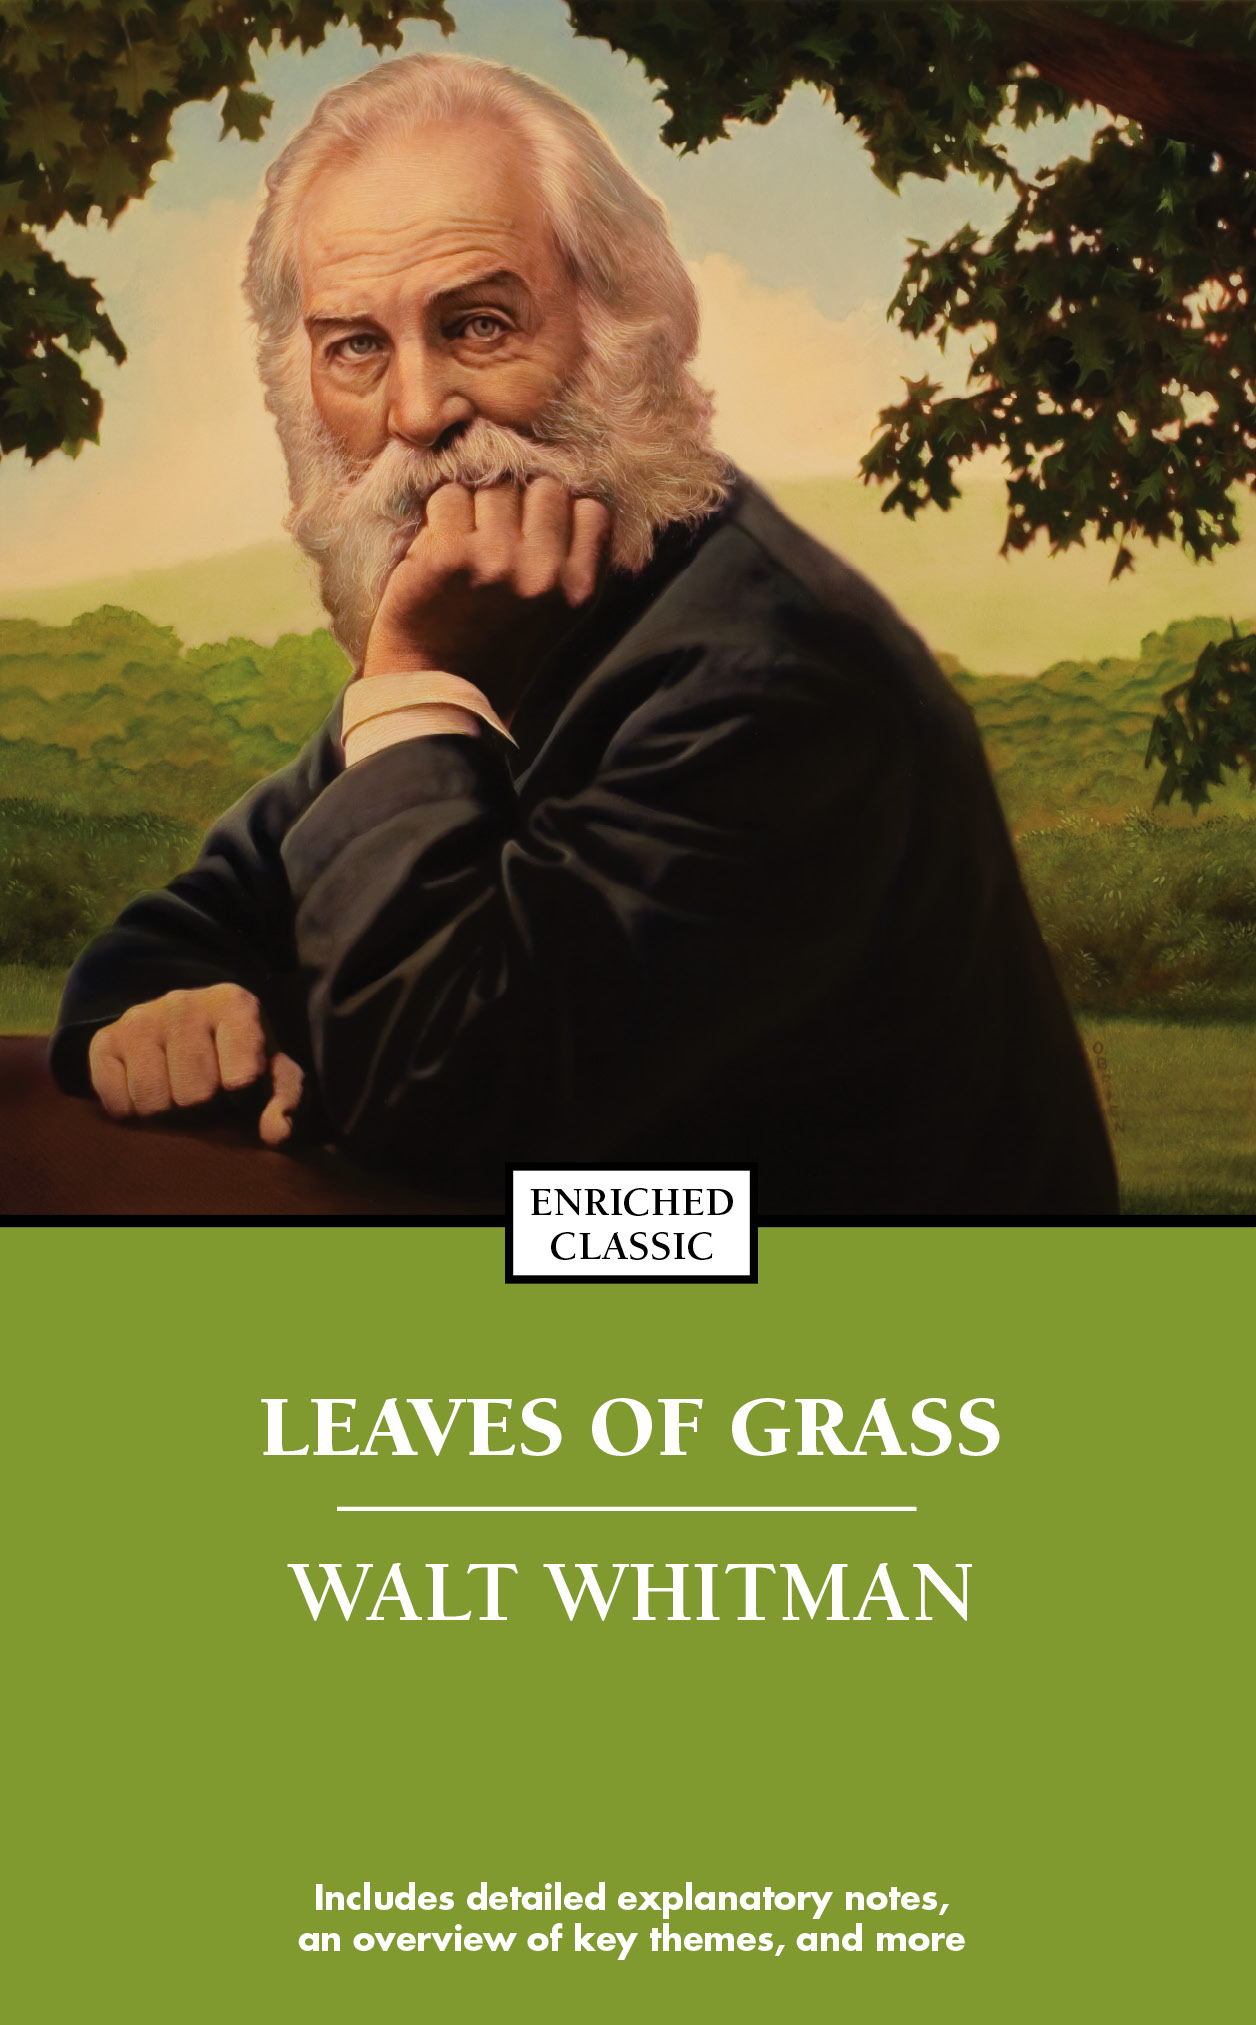 Review of Walt Whitman's Leaves of Grass